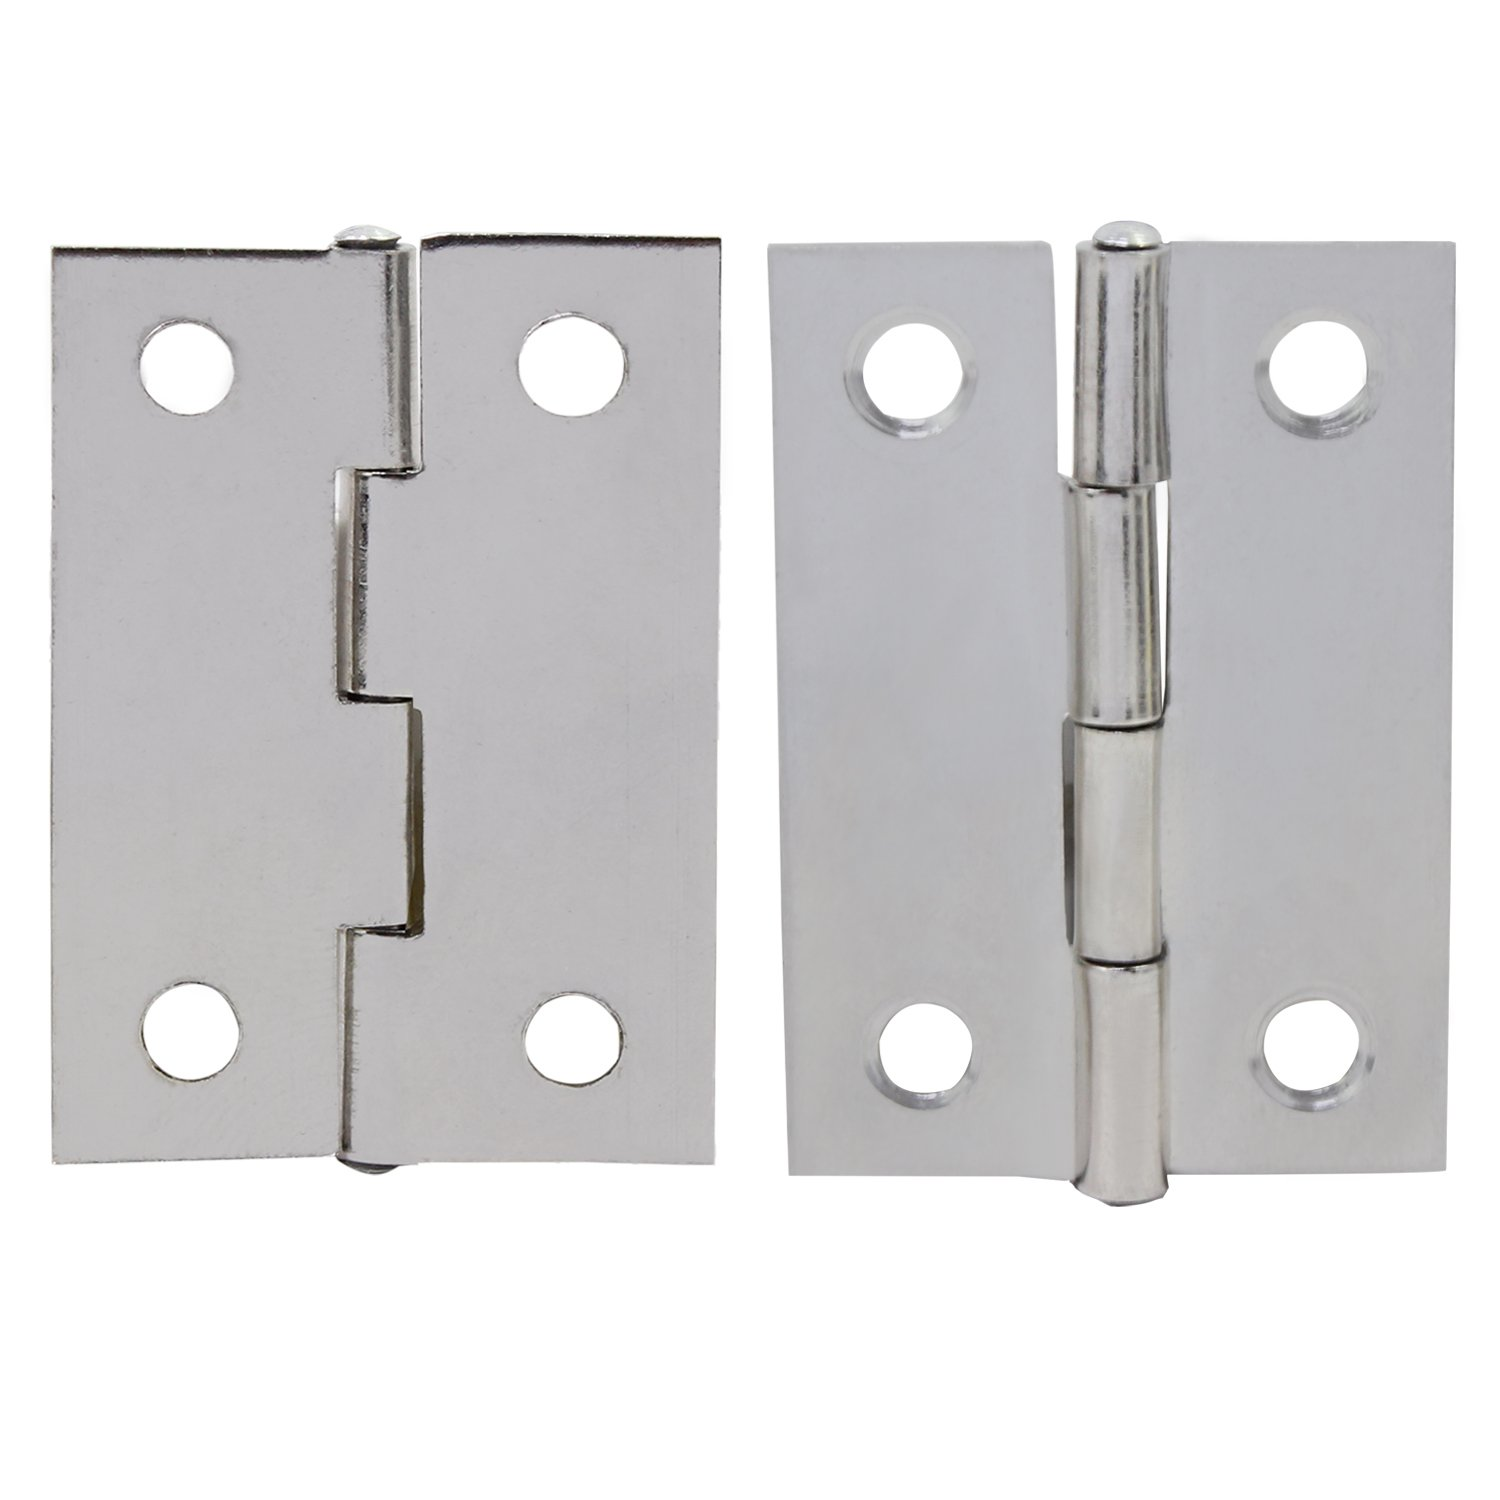 OCR 30PCS 2Inch Folding Butt Hinges Stainless Steel Home Furniture Hardware Cabinet Hinges with 120PCS Screws(2inch 30pcs) by OCR (Image #4)